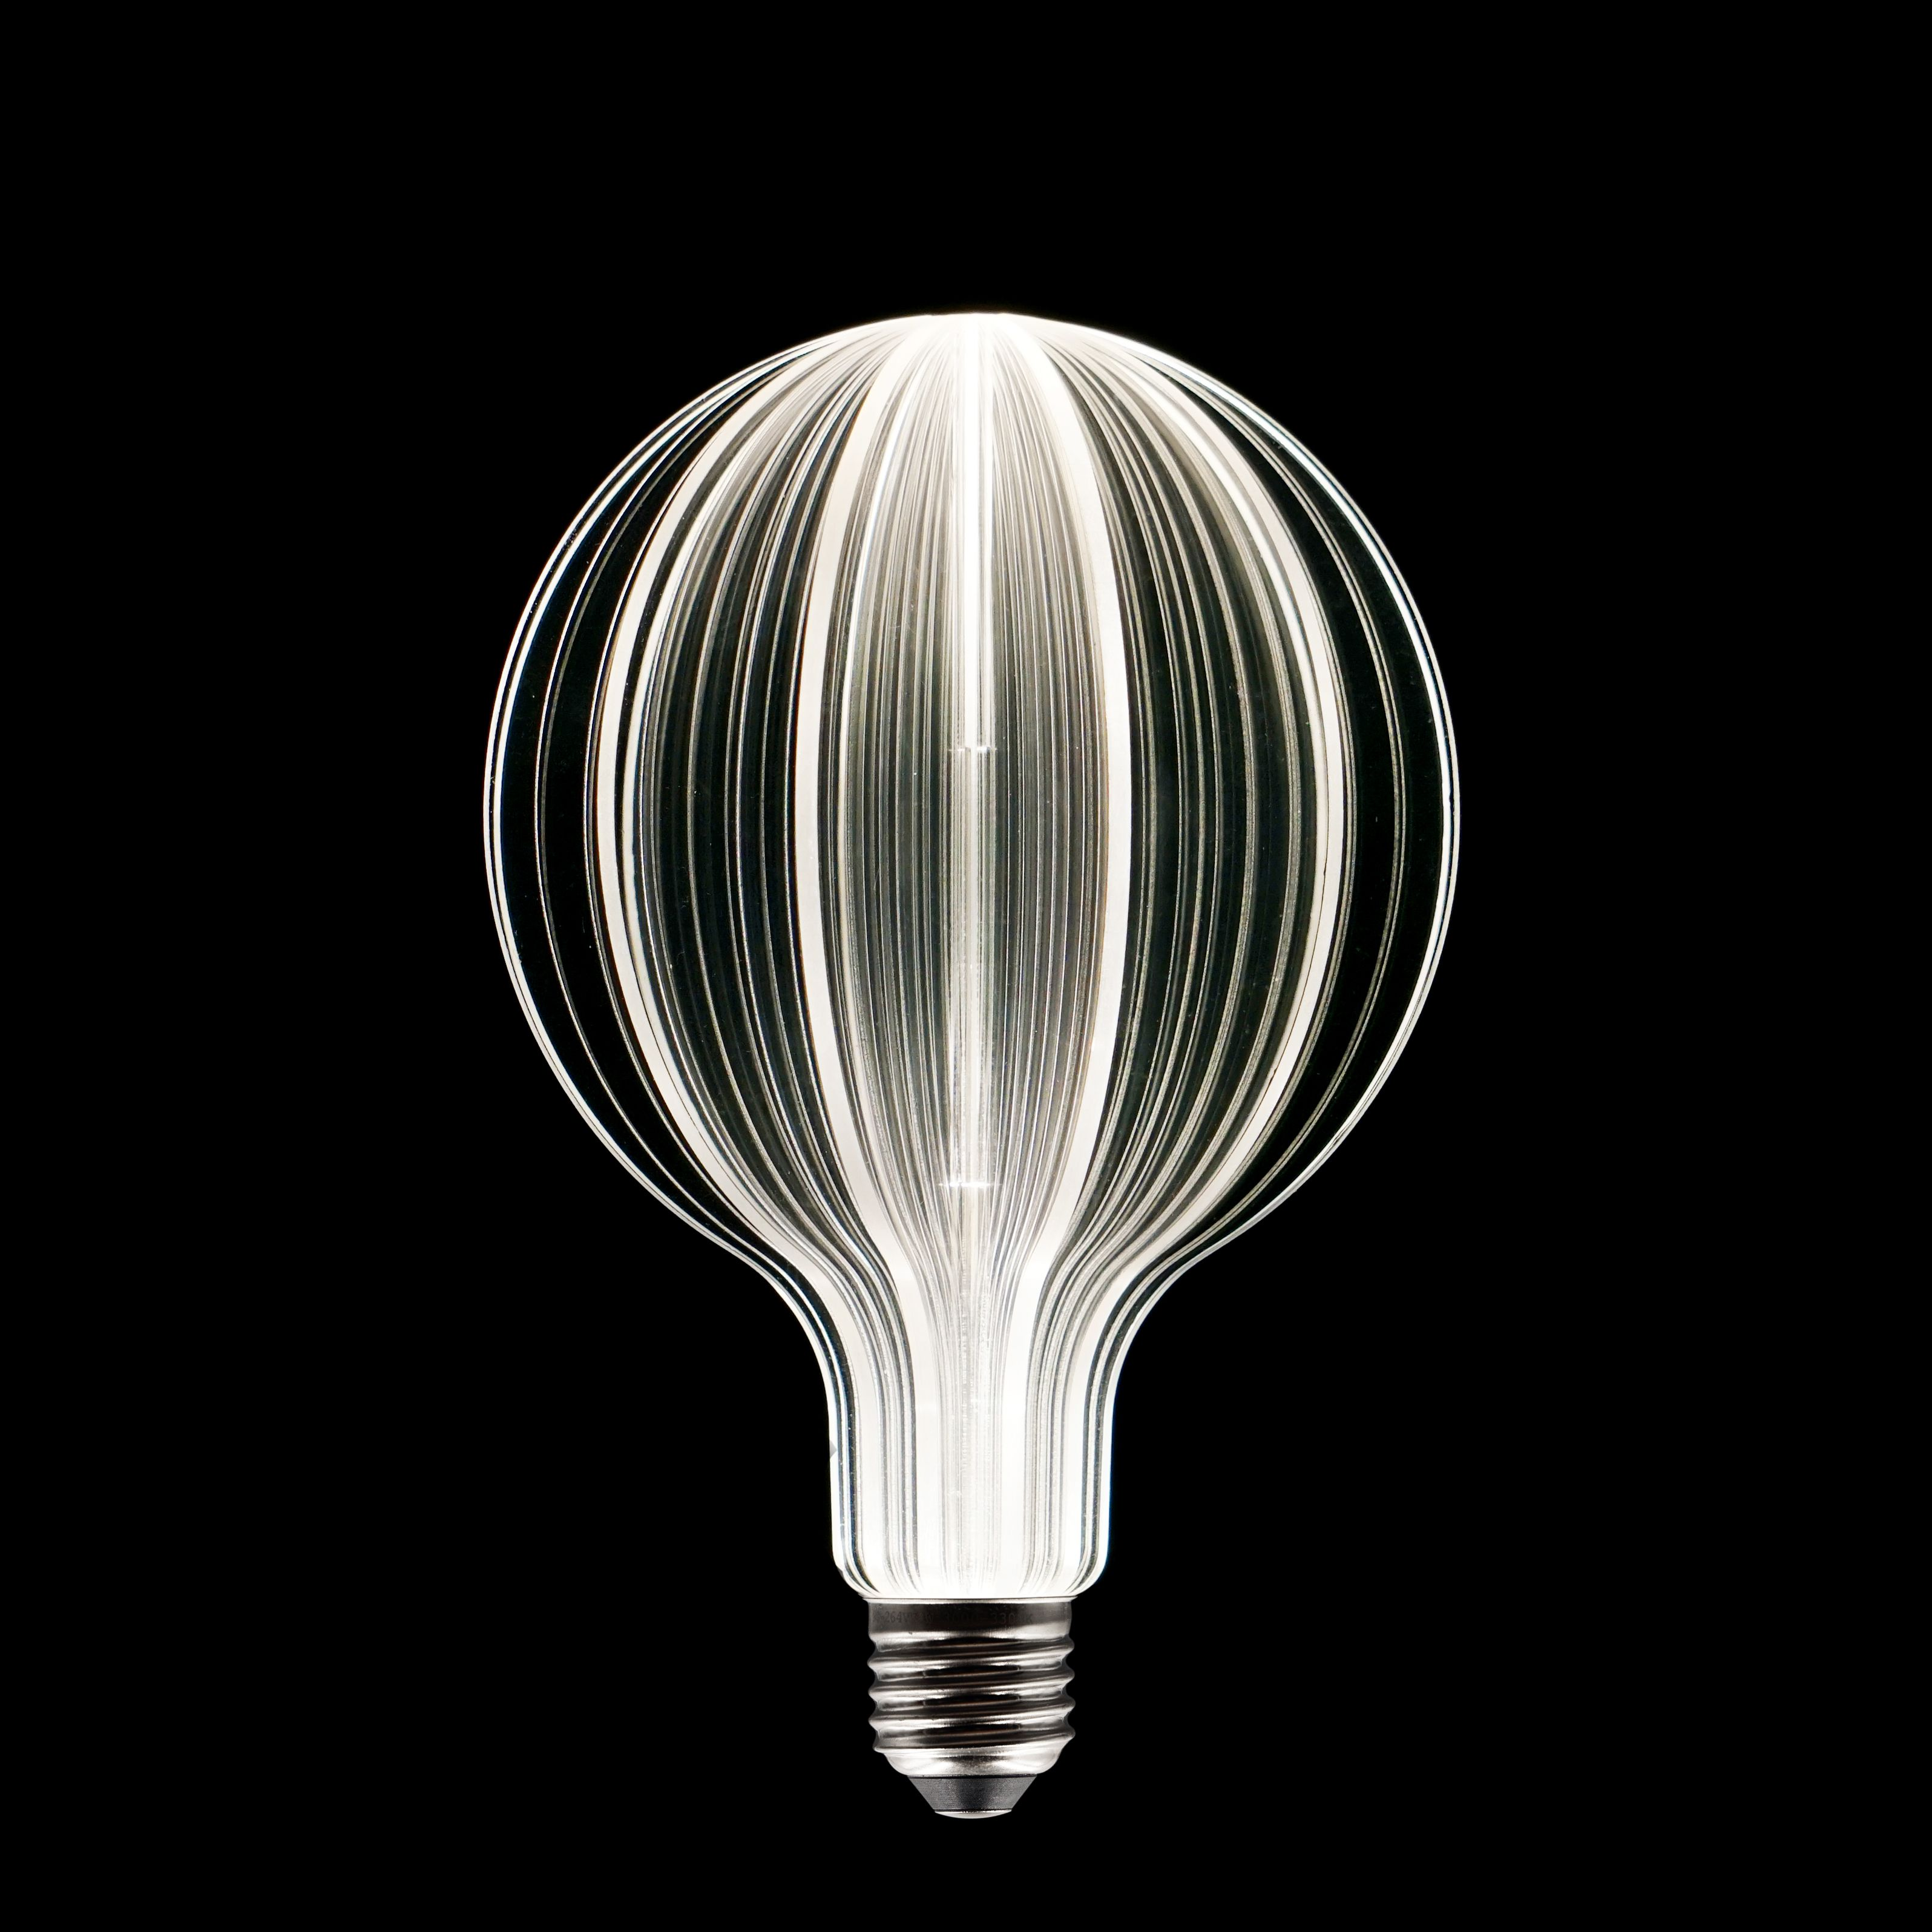 A Sparkling Universe Uri Laser Etched Led Light Bulb Sun From The Uri Collection Design Lighting Lightbulb Led Light Bulb Light Bulb Globe Light Bulbs